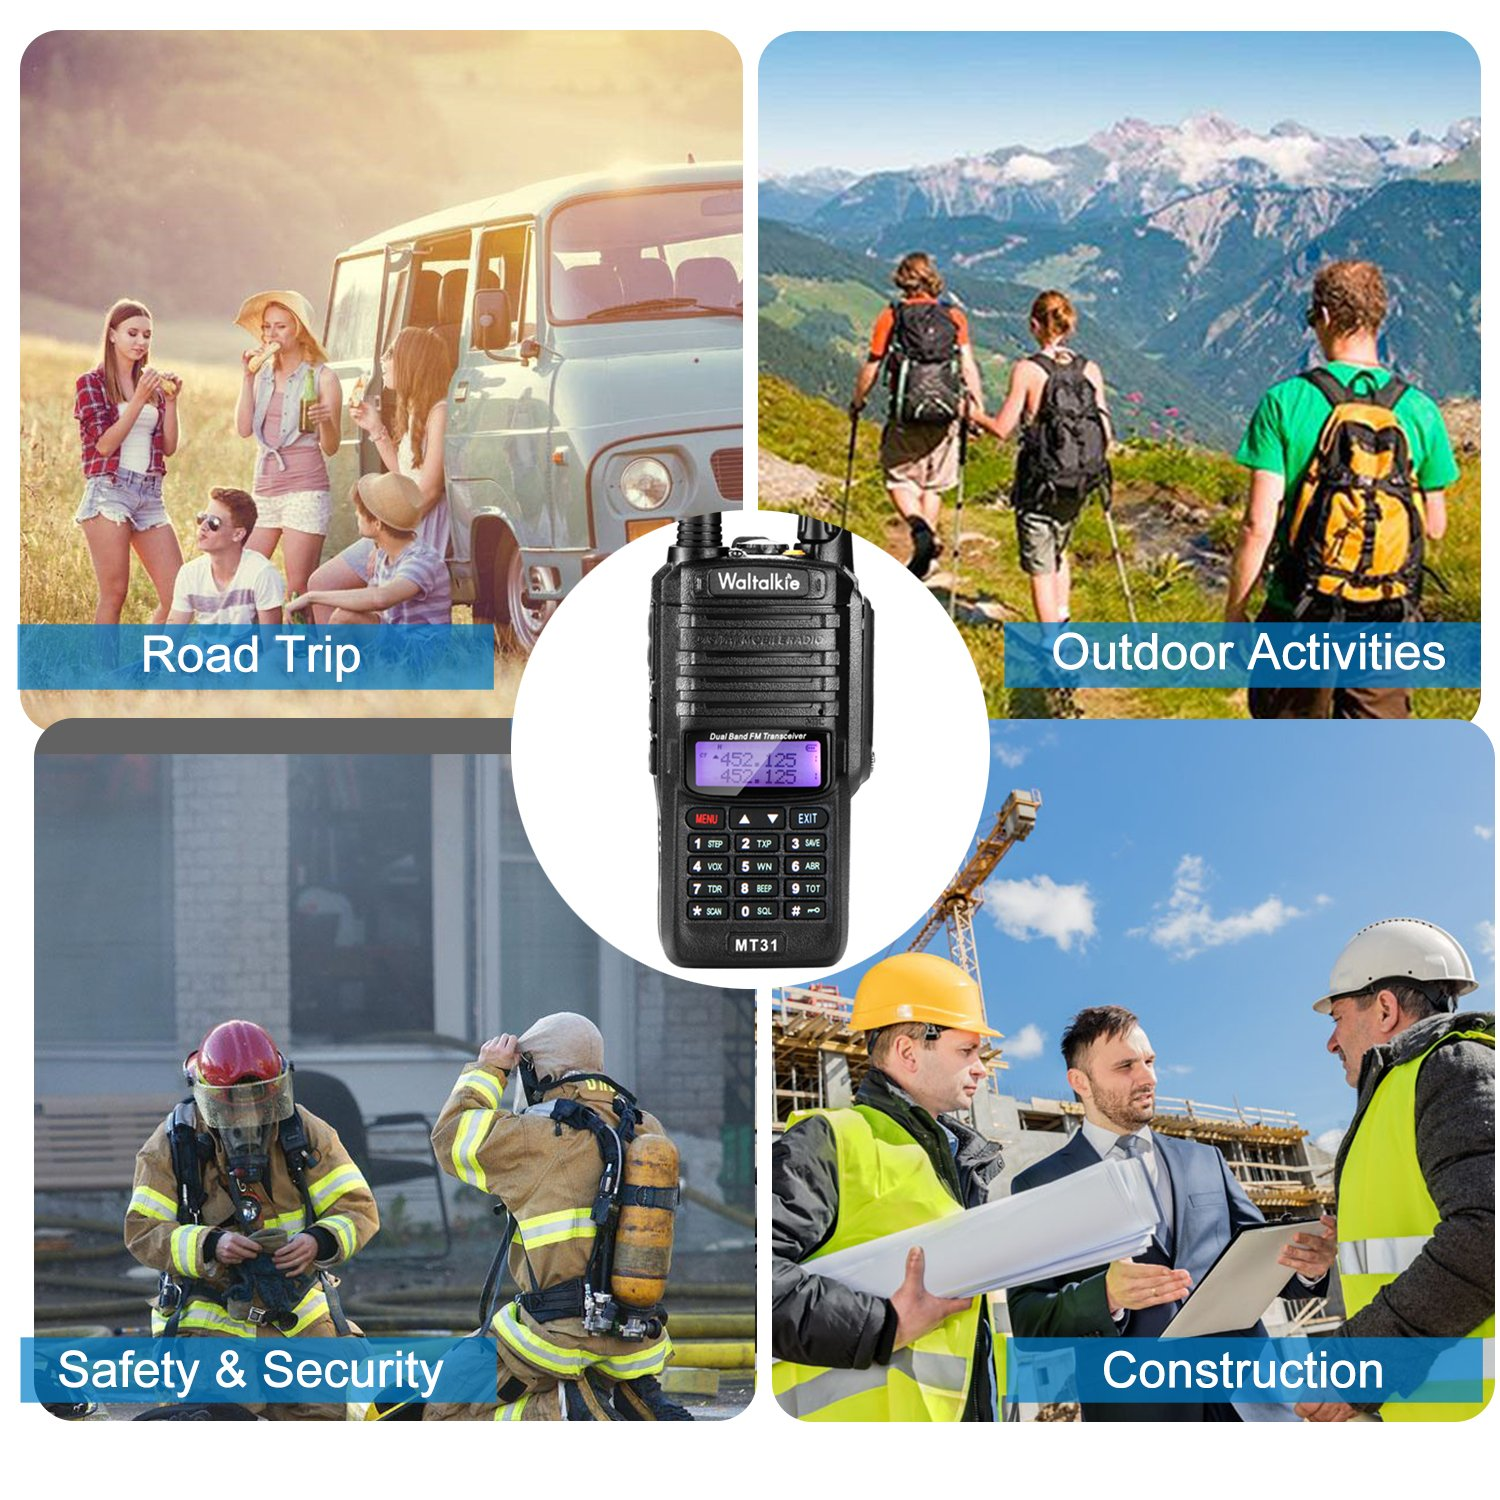 Wireless Radio Transceiver, IP66 Waterproof & Dustproof Two Way Radio Walkie Talkie with Headset/LED Flashlight/Battery/Charger for Indoor & Outdoor Activities by Waltalkie (Image #7)